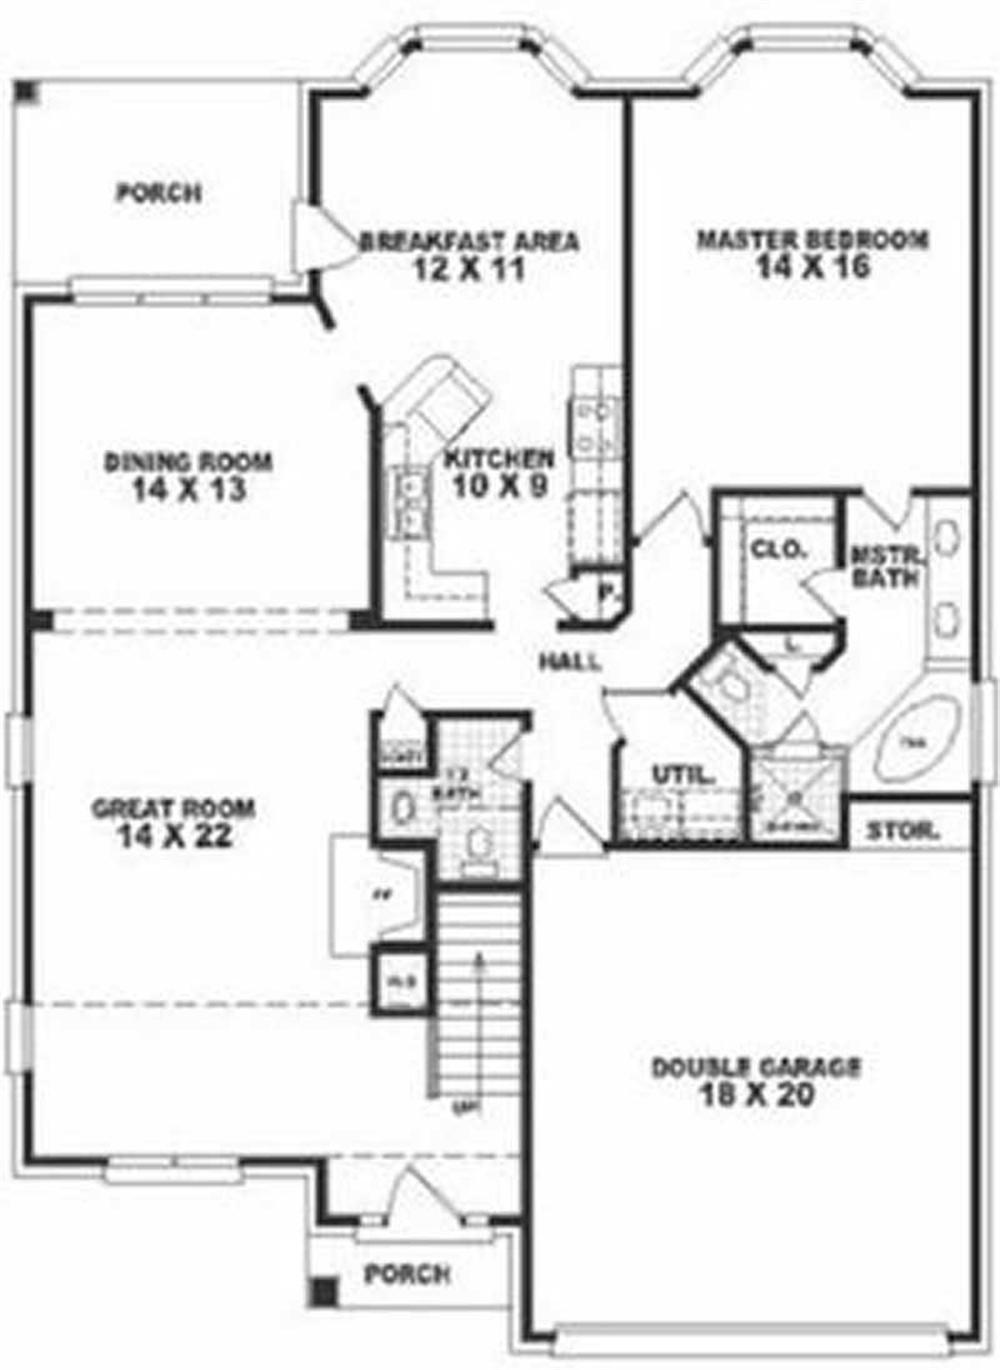 Large images for house plan 170 2820 for Home plan collection